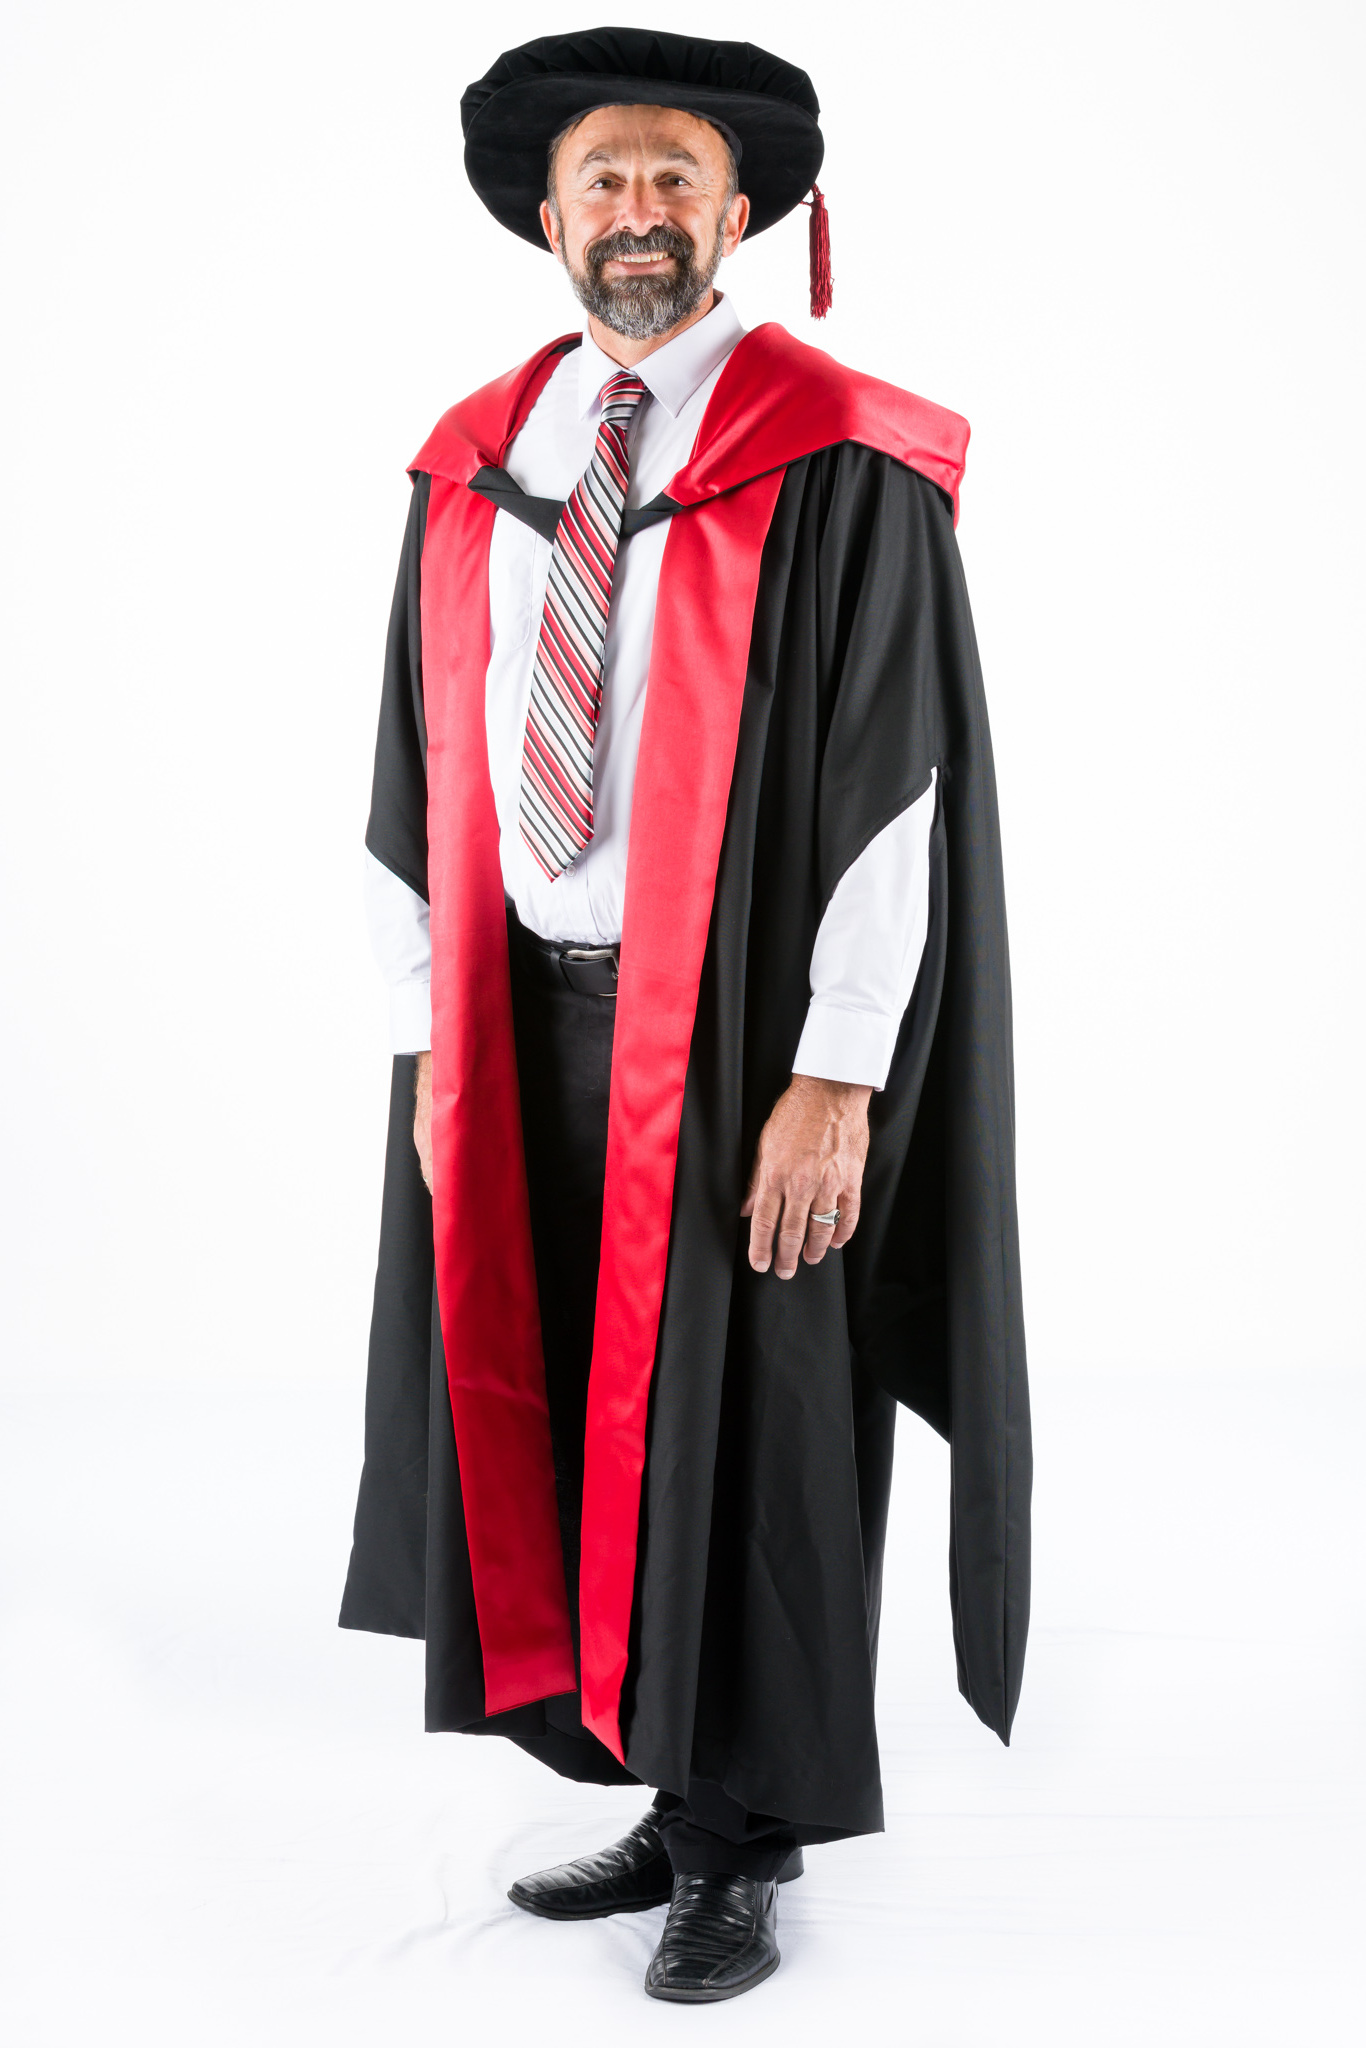 PhD Academic Dress Graduation Gown, Hood and Bonnet – The Gown Chick